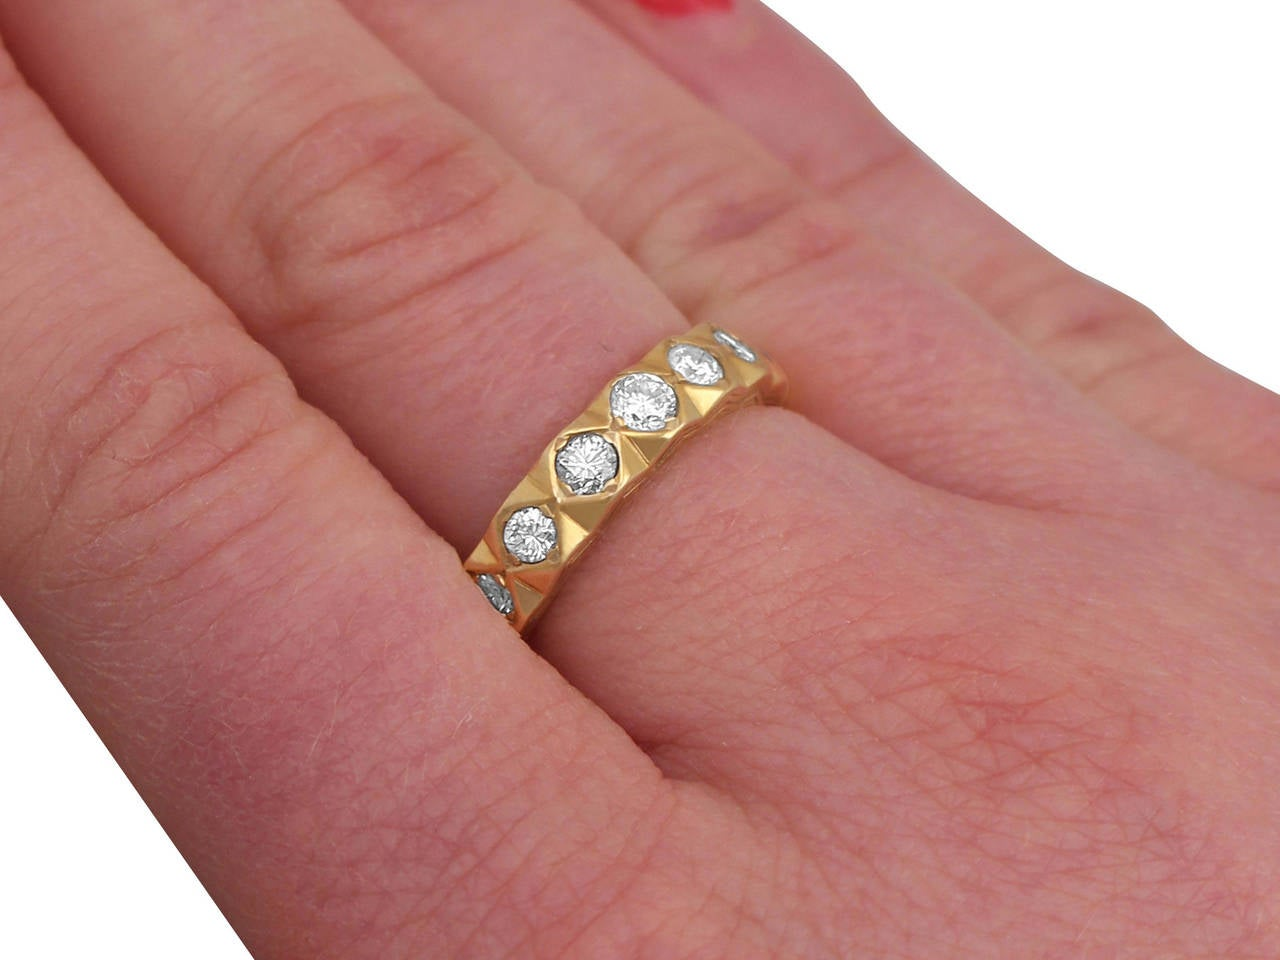 0.75 Carat Diamond and 18 Karat Yellow Gold Half Eternity Ring ...